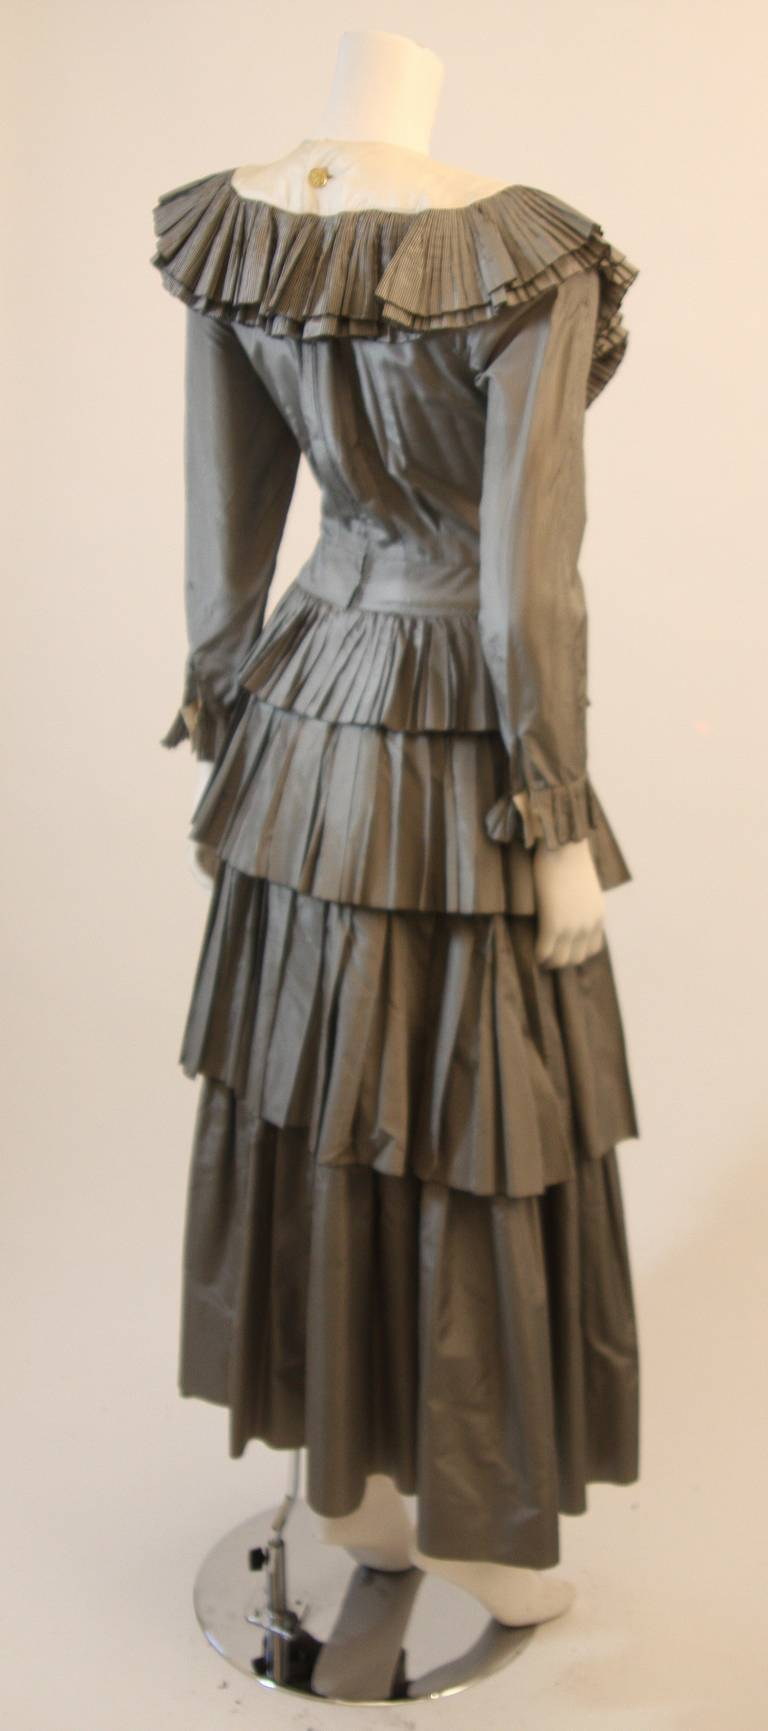 Chanel Edwardian Tiered Ruffle Gingham Gown with Black Bow 8